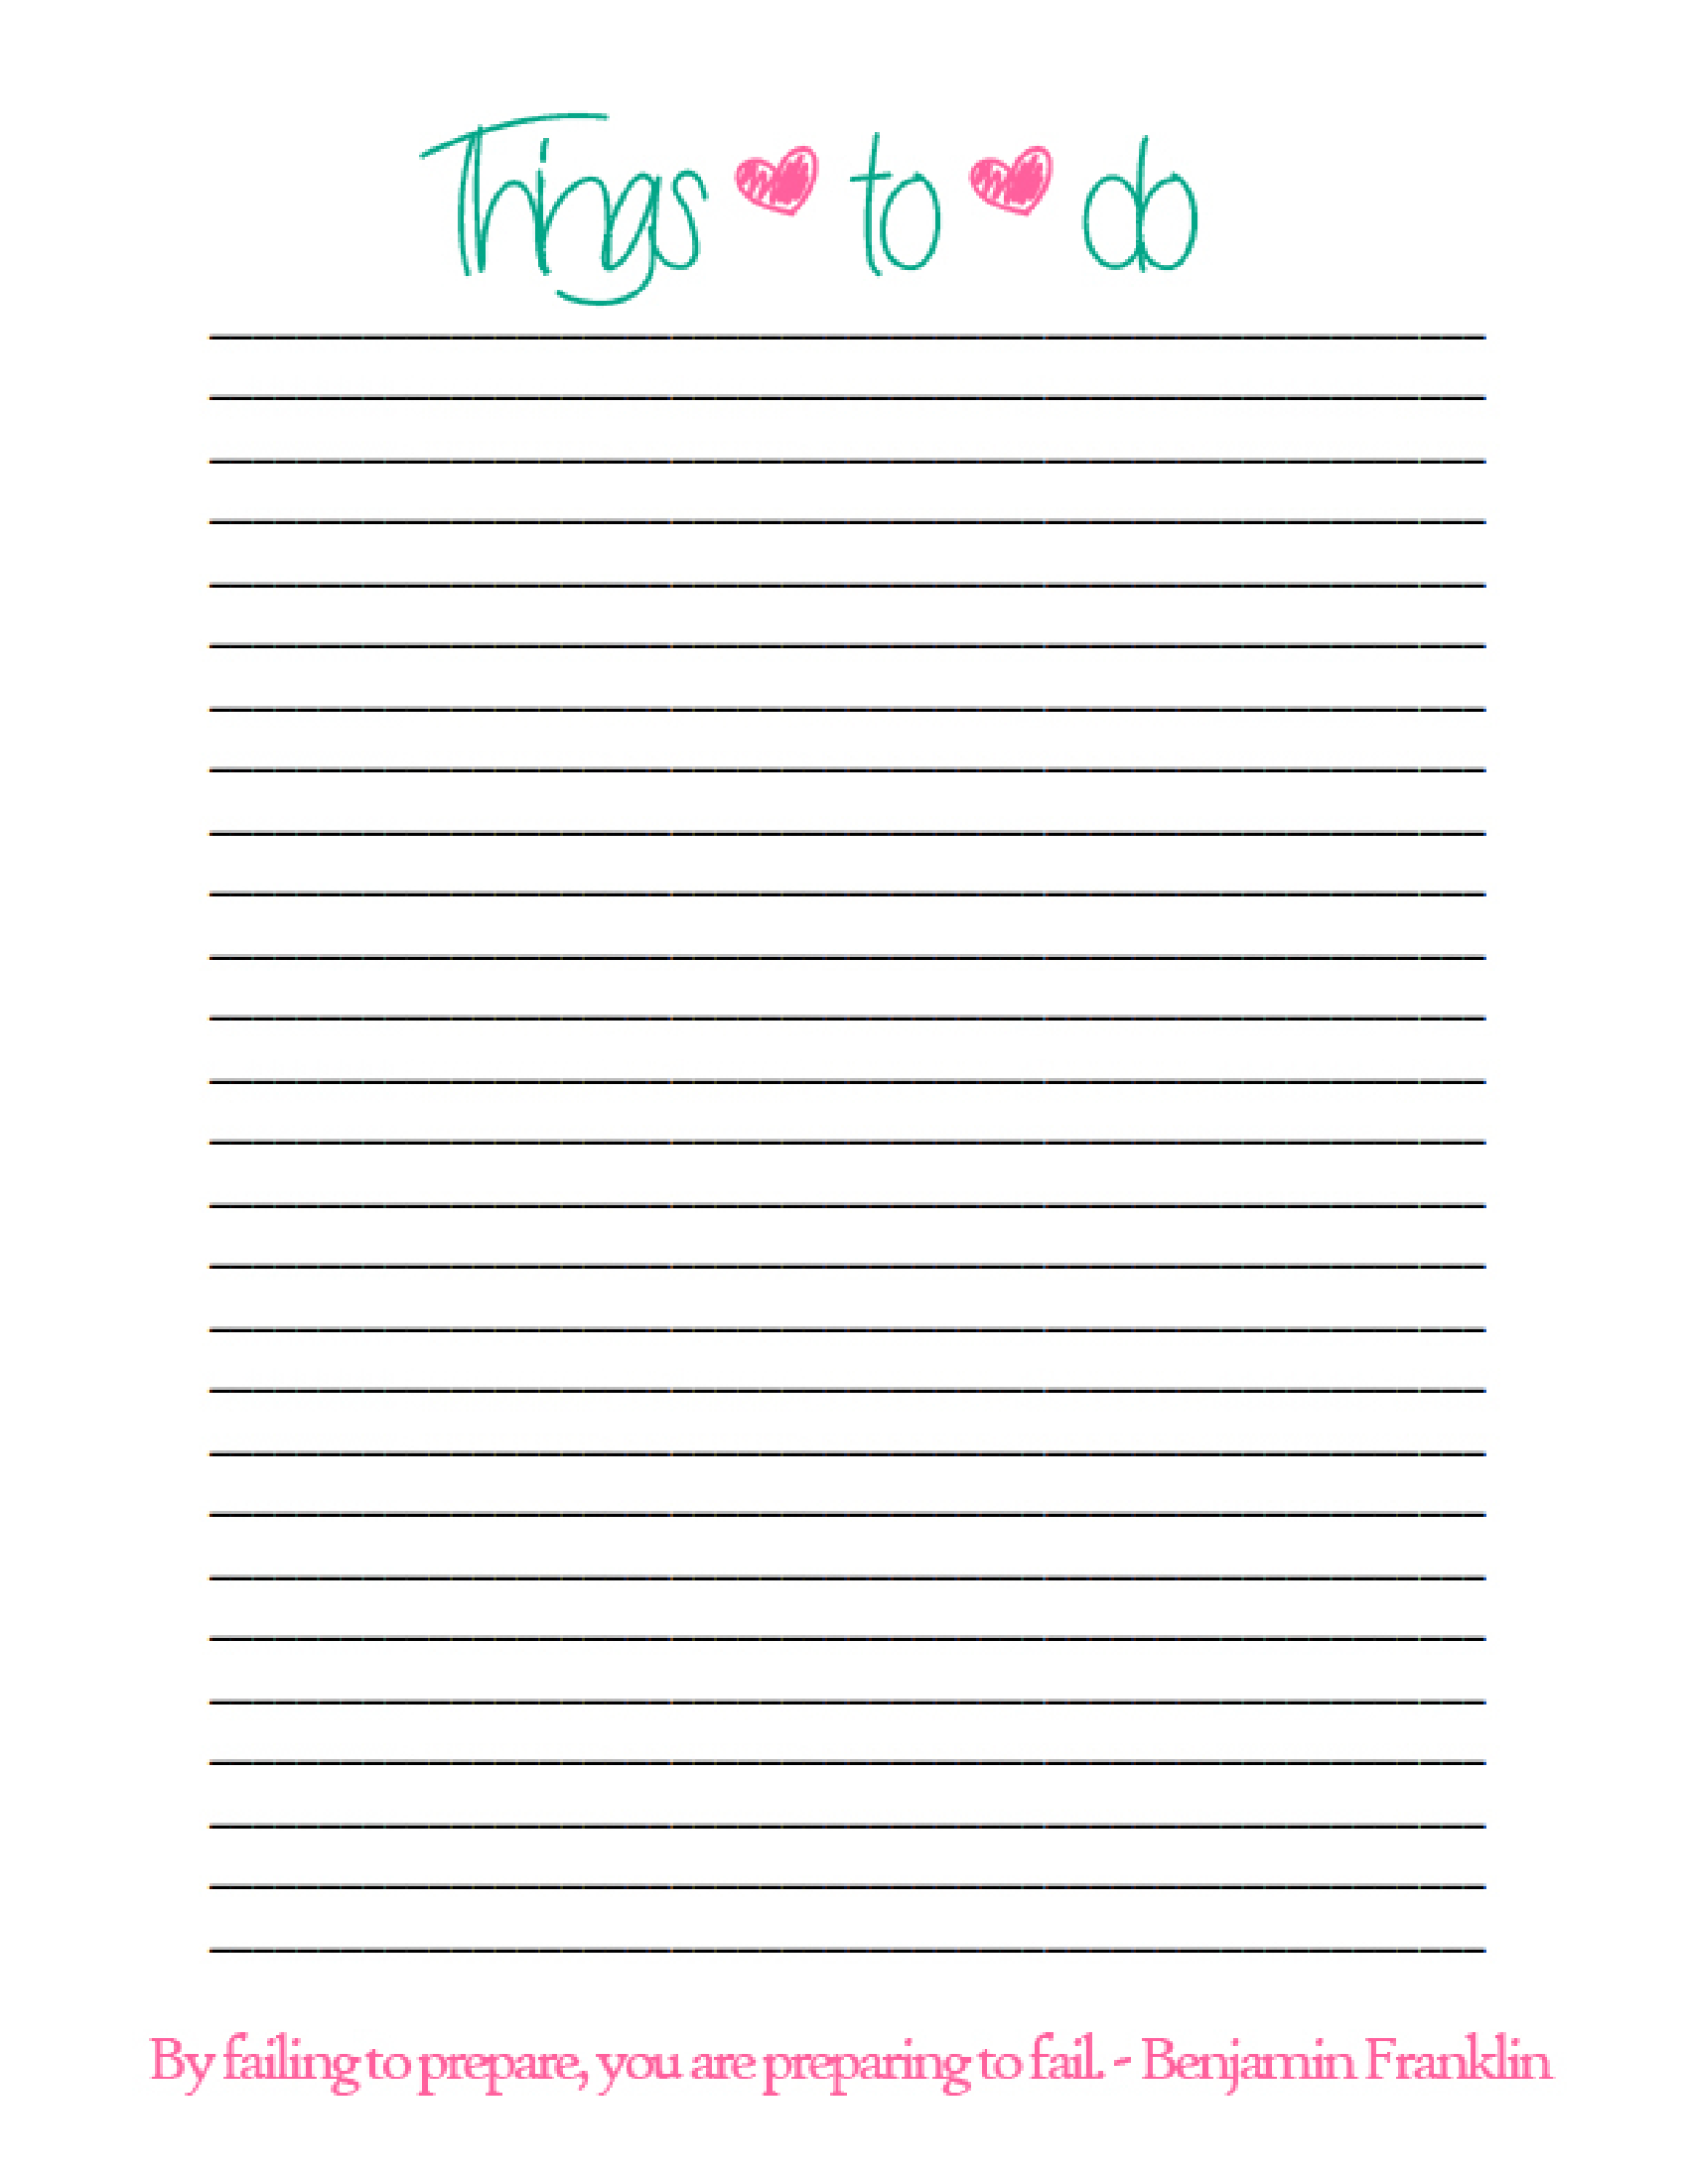 Simple Things To Do List